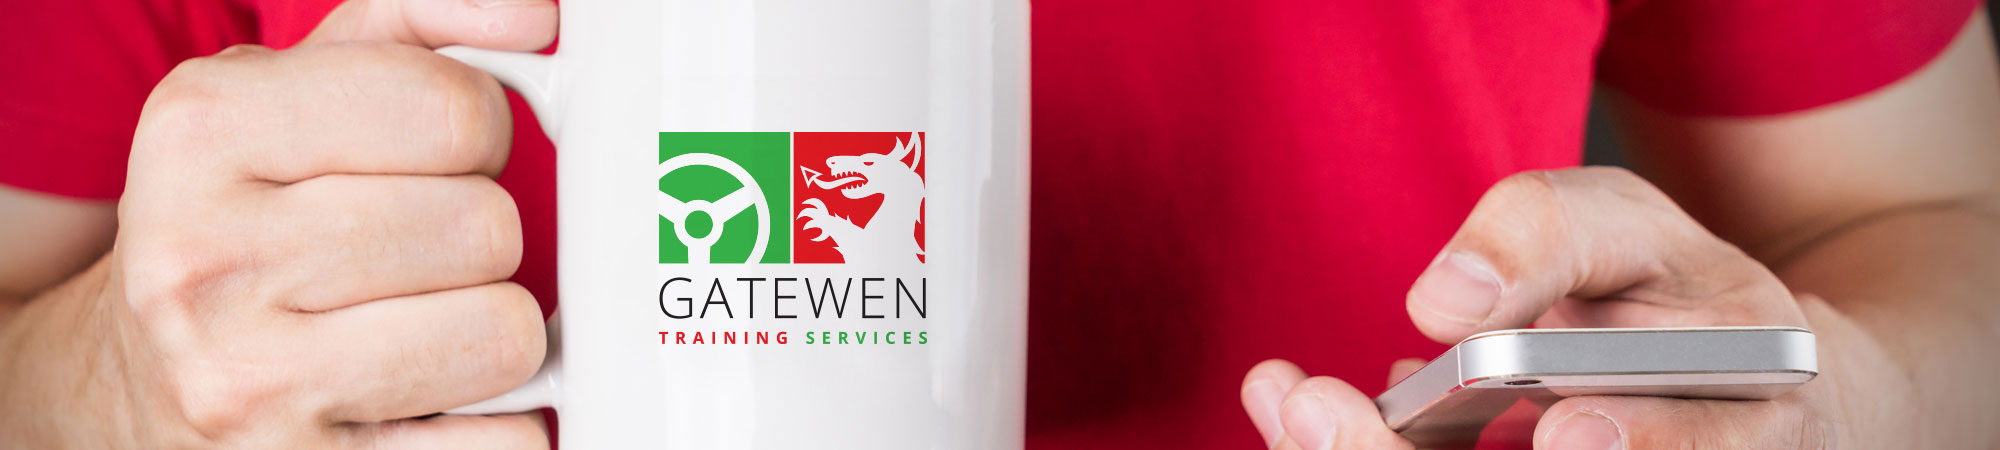 Trainee contacting Gatewen Training Services by phone whilst holding mug